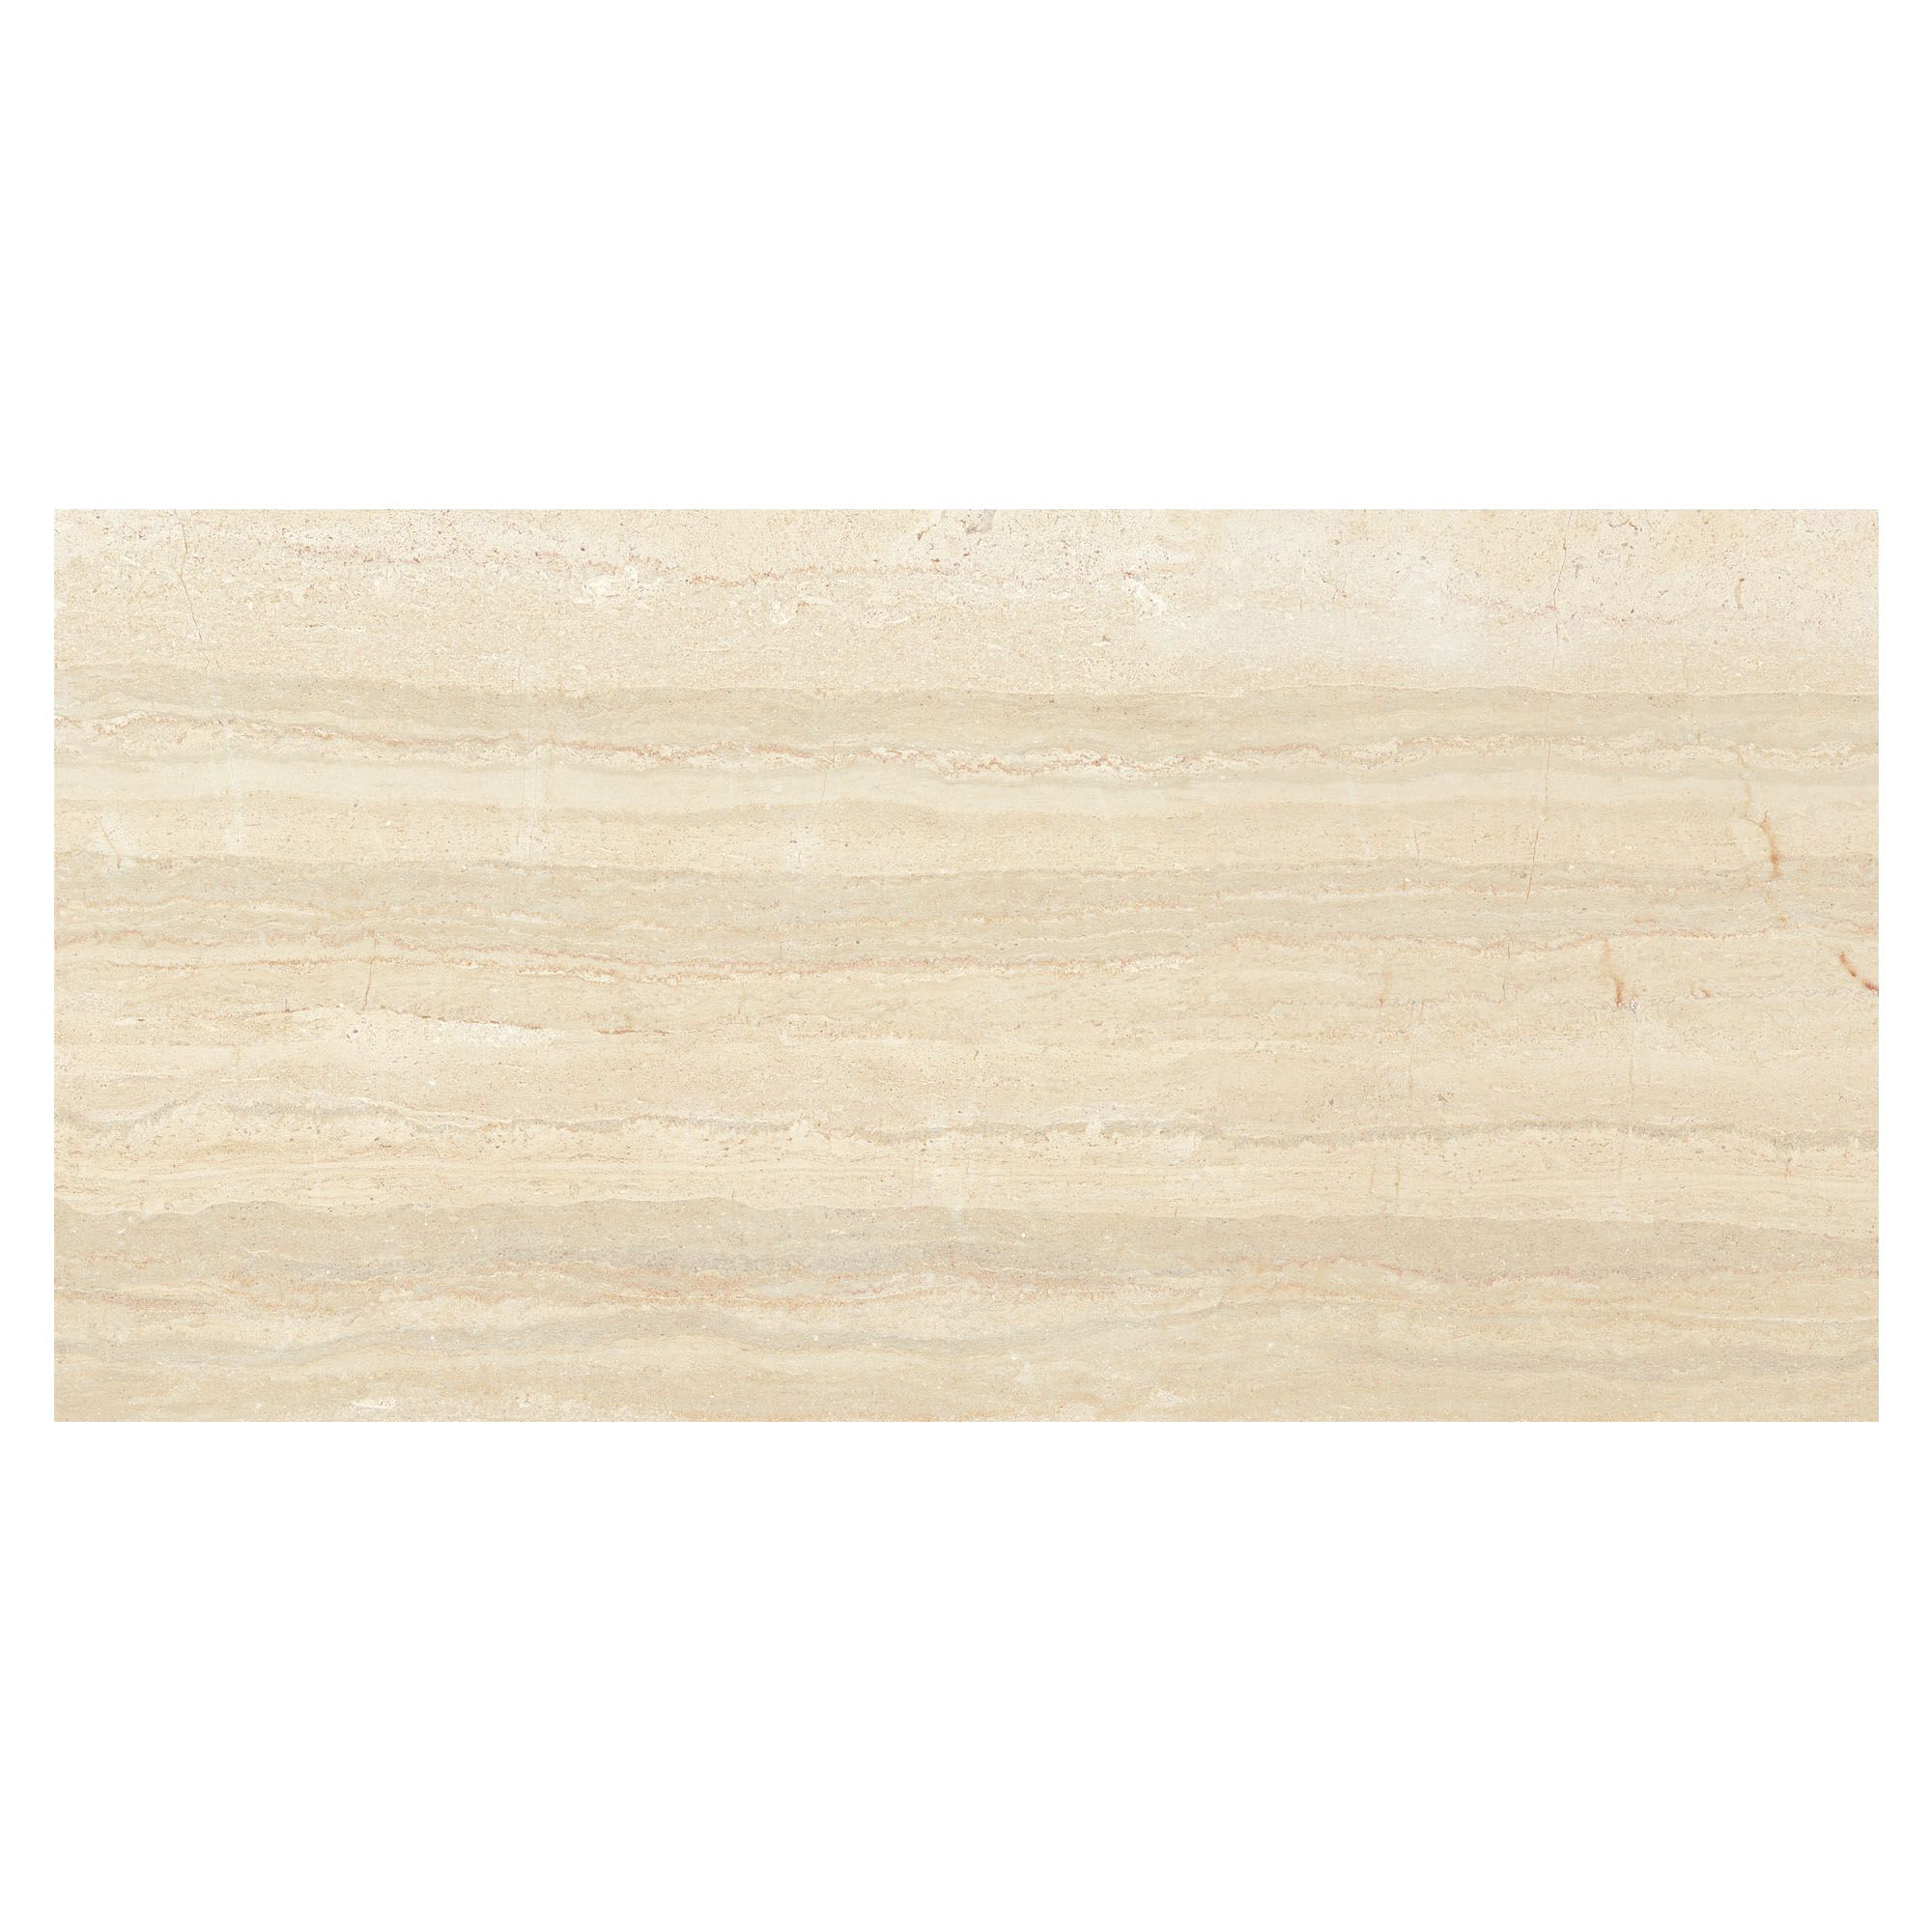 Neos Light beige Wood effect Ceramic Wall tile, Pack of 8, (L)500mm ...